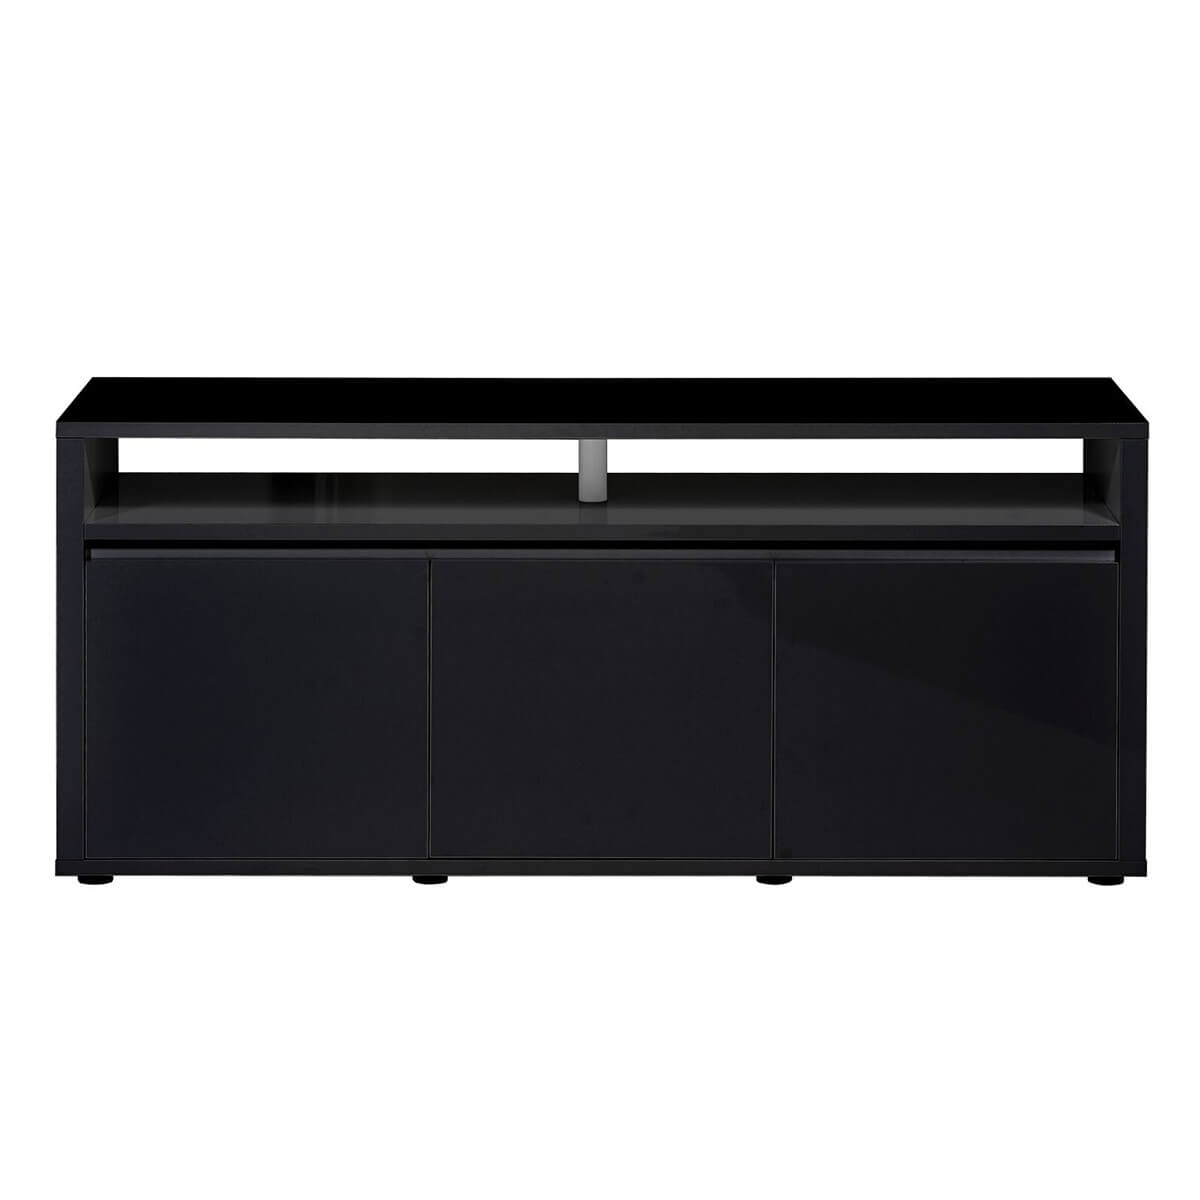 Urbana TV Unit 150cm Black High Gloss